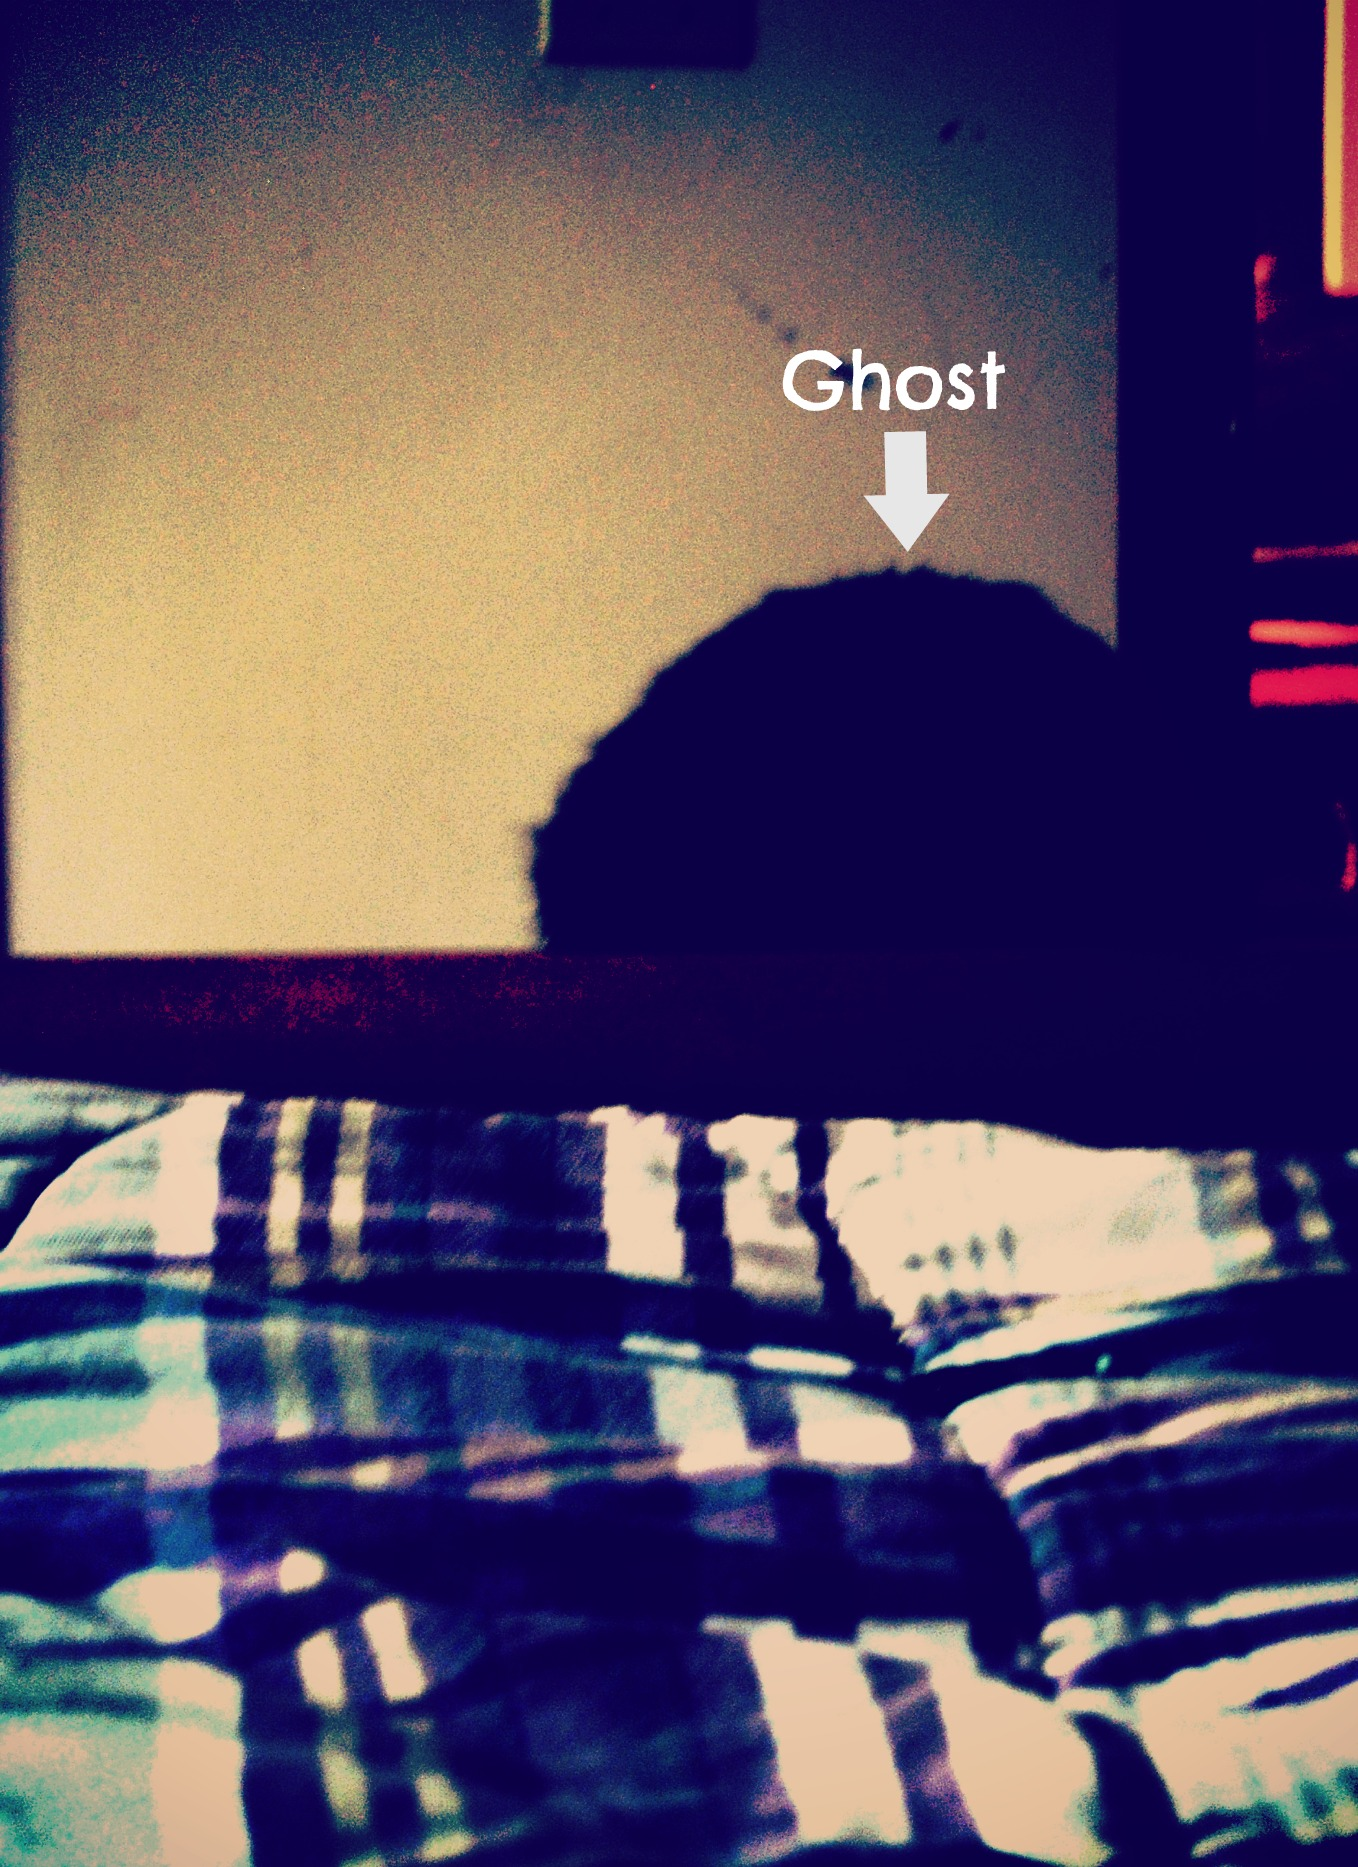 Foot Of The Bed i see ghosts at the foot of my bed, or is that sherman? - my